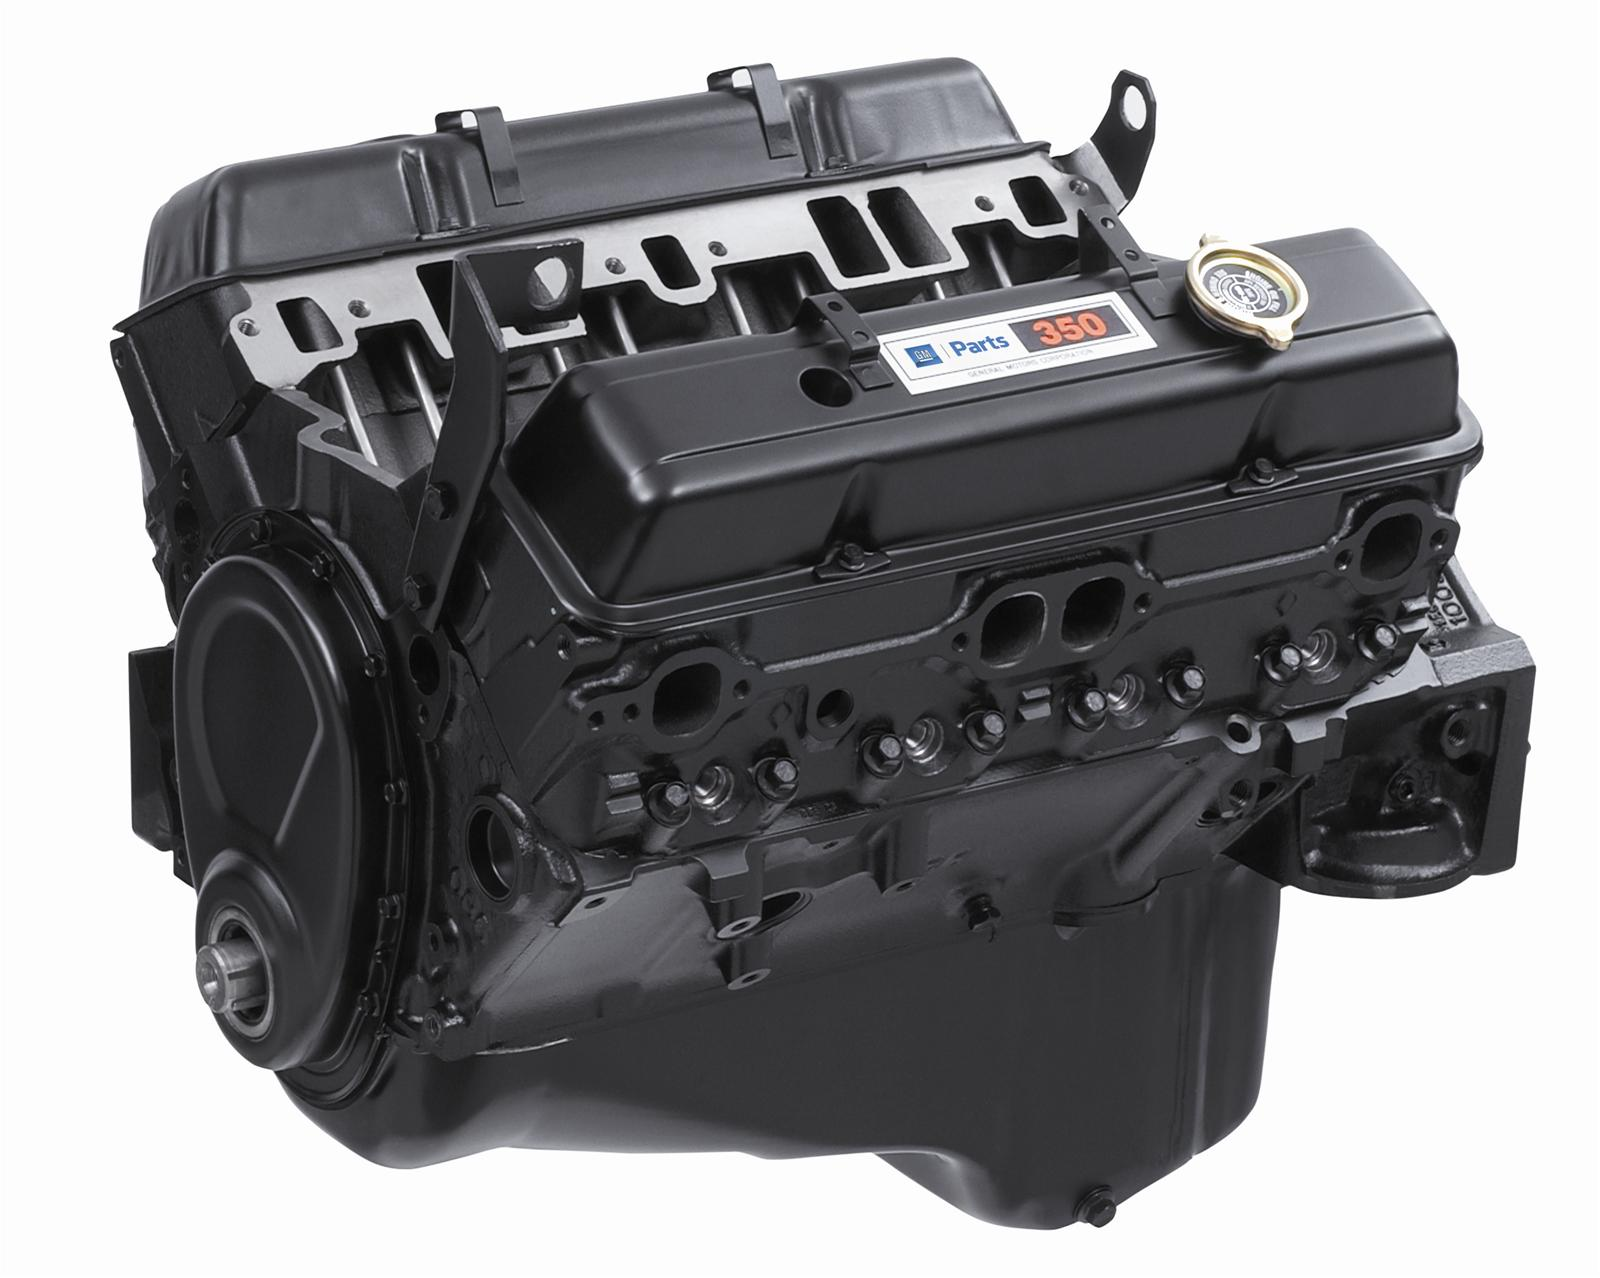 Chevrolet Performance 350 C.I.D. Base Engine emblies 12681429 ...